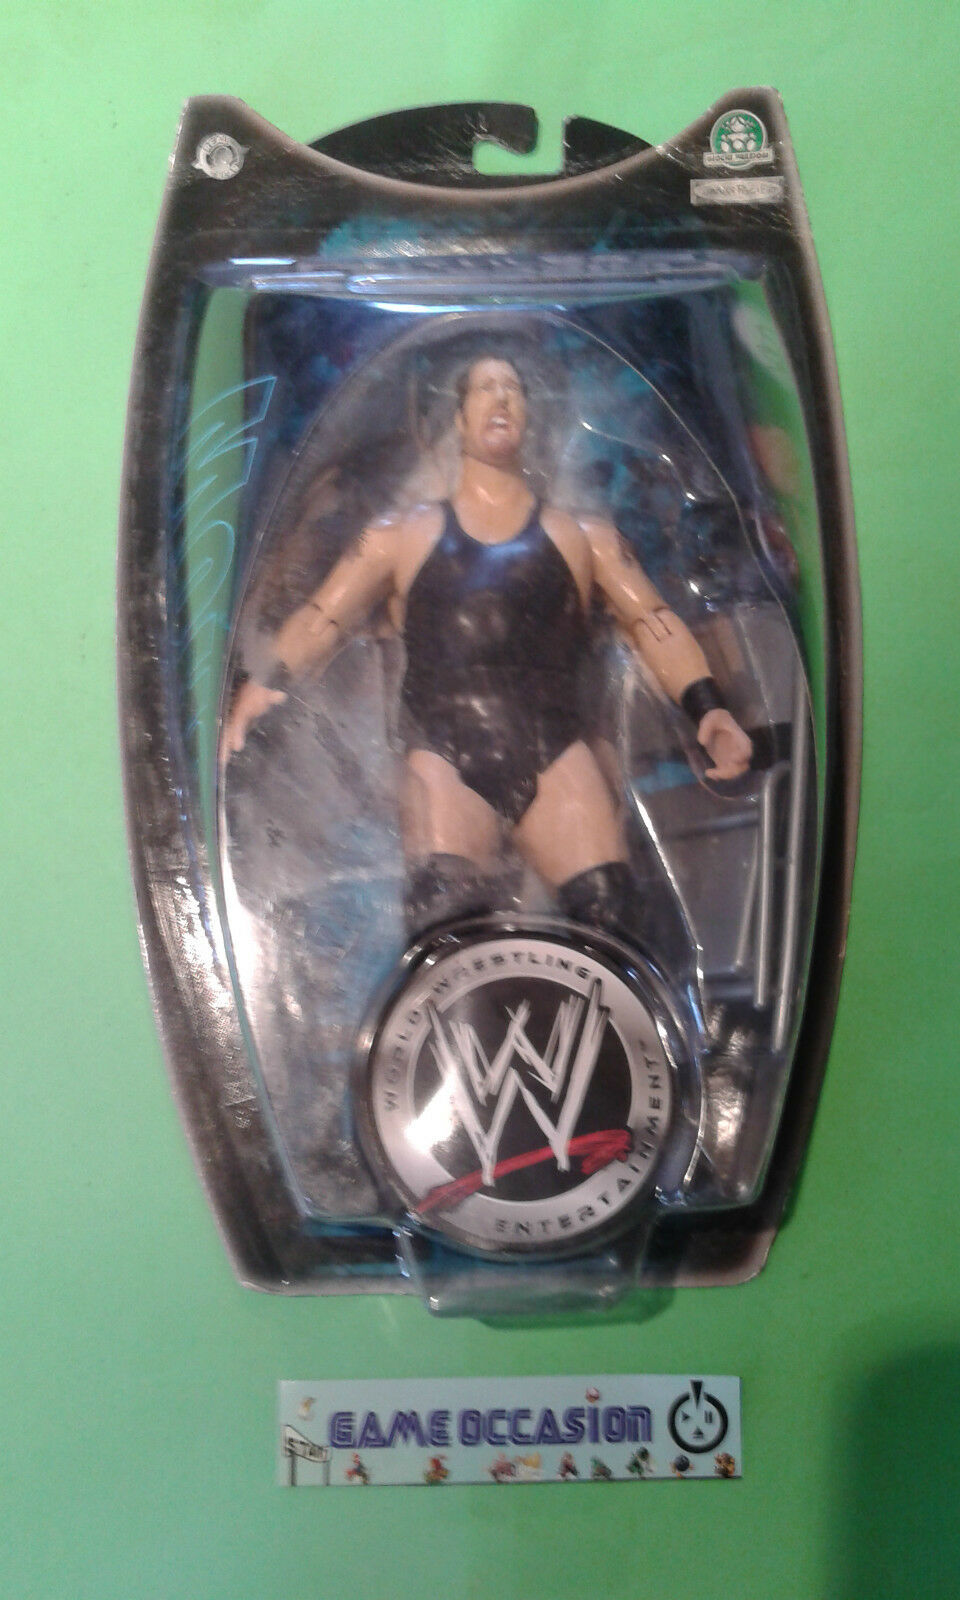 FIGURINE CATCH WWE BIG SHOW RUTHLESS AGGRESSION WRESTLING TOY